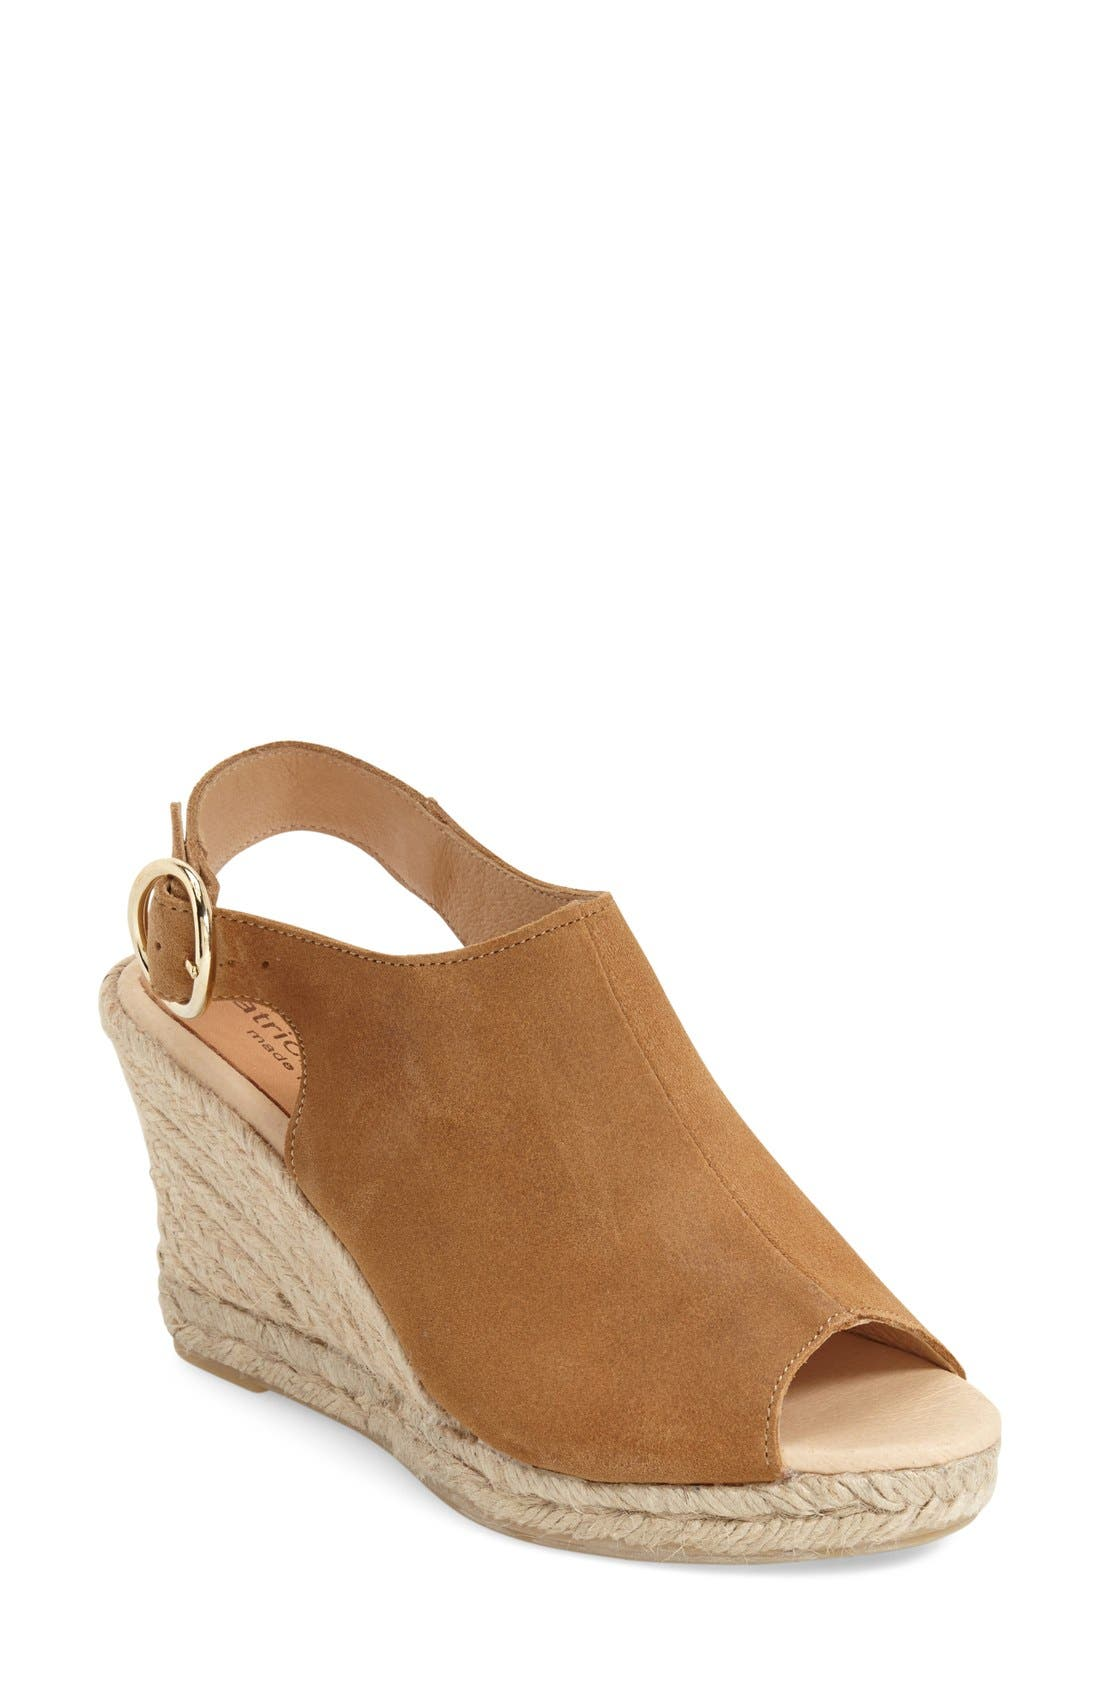 patricia green 'Belle' Espadrille Wedge Sandal (Women)